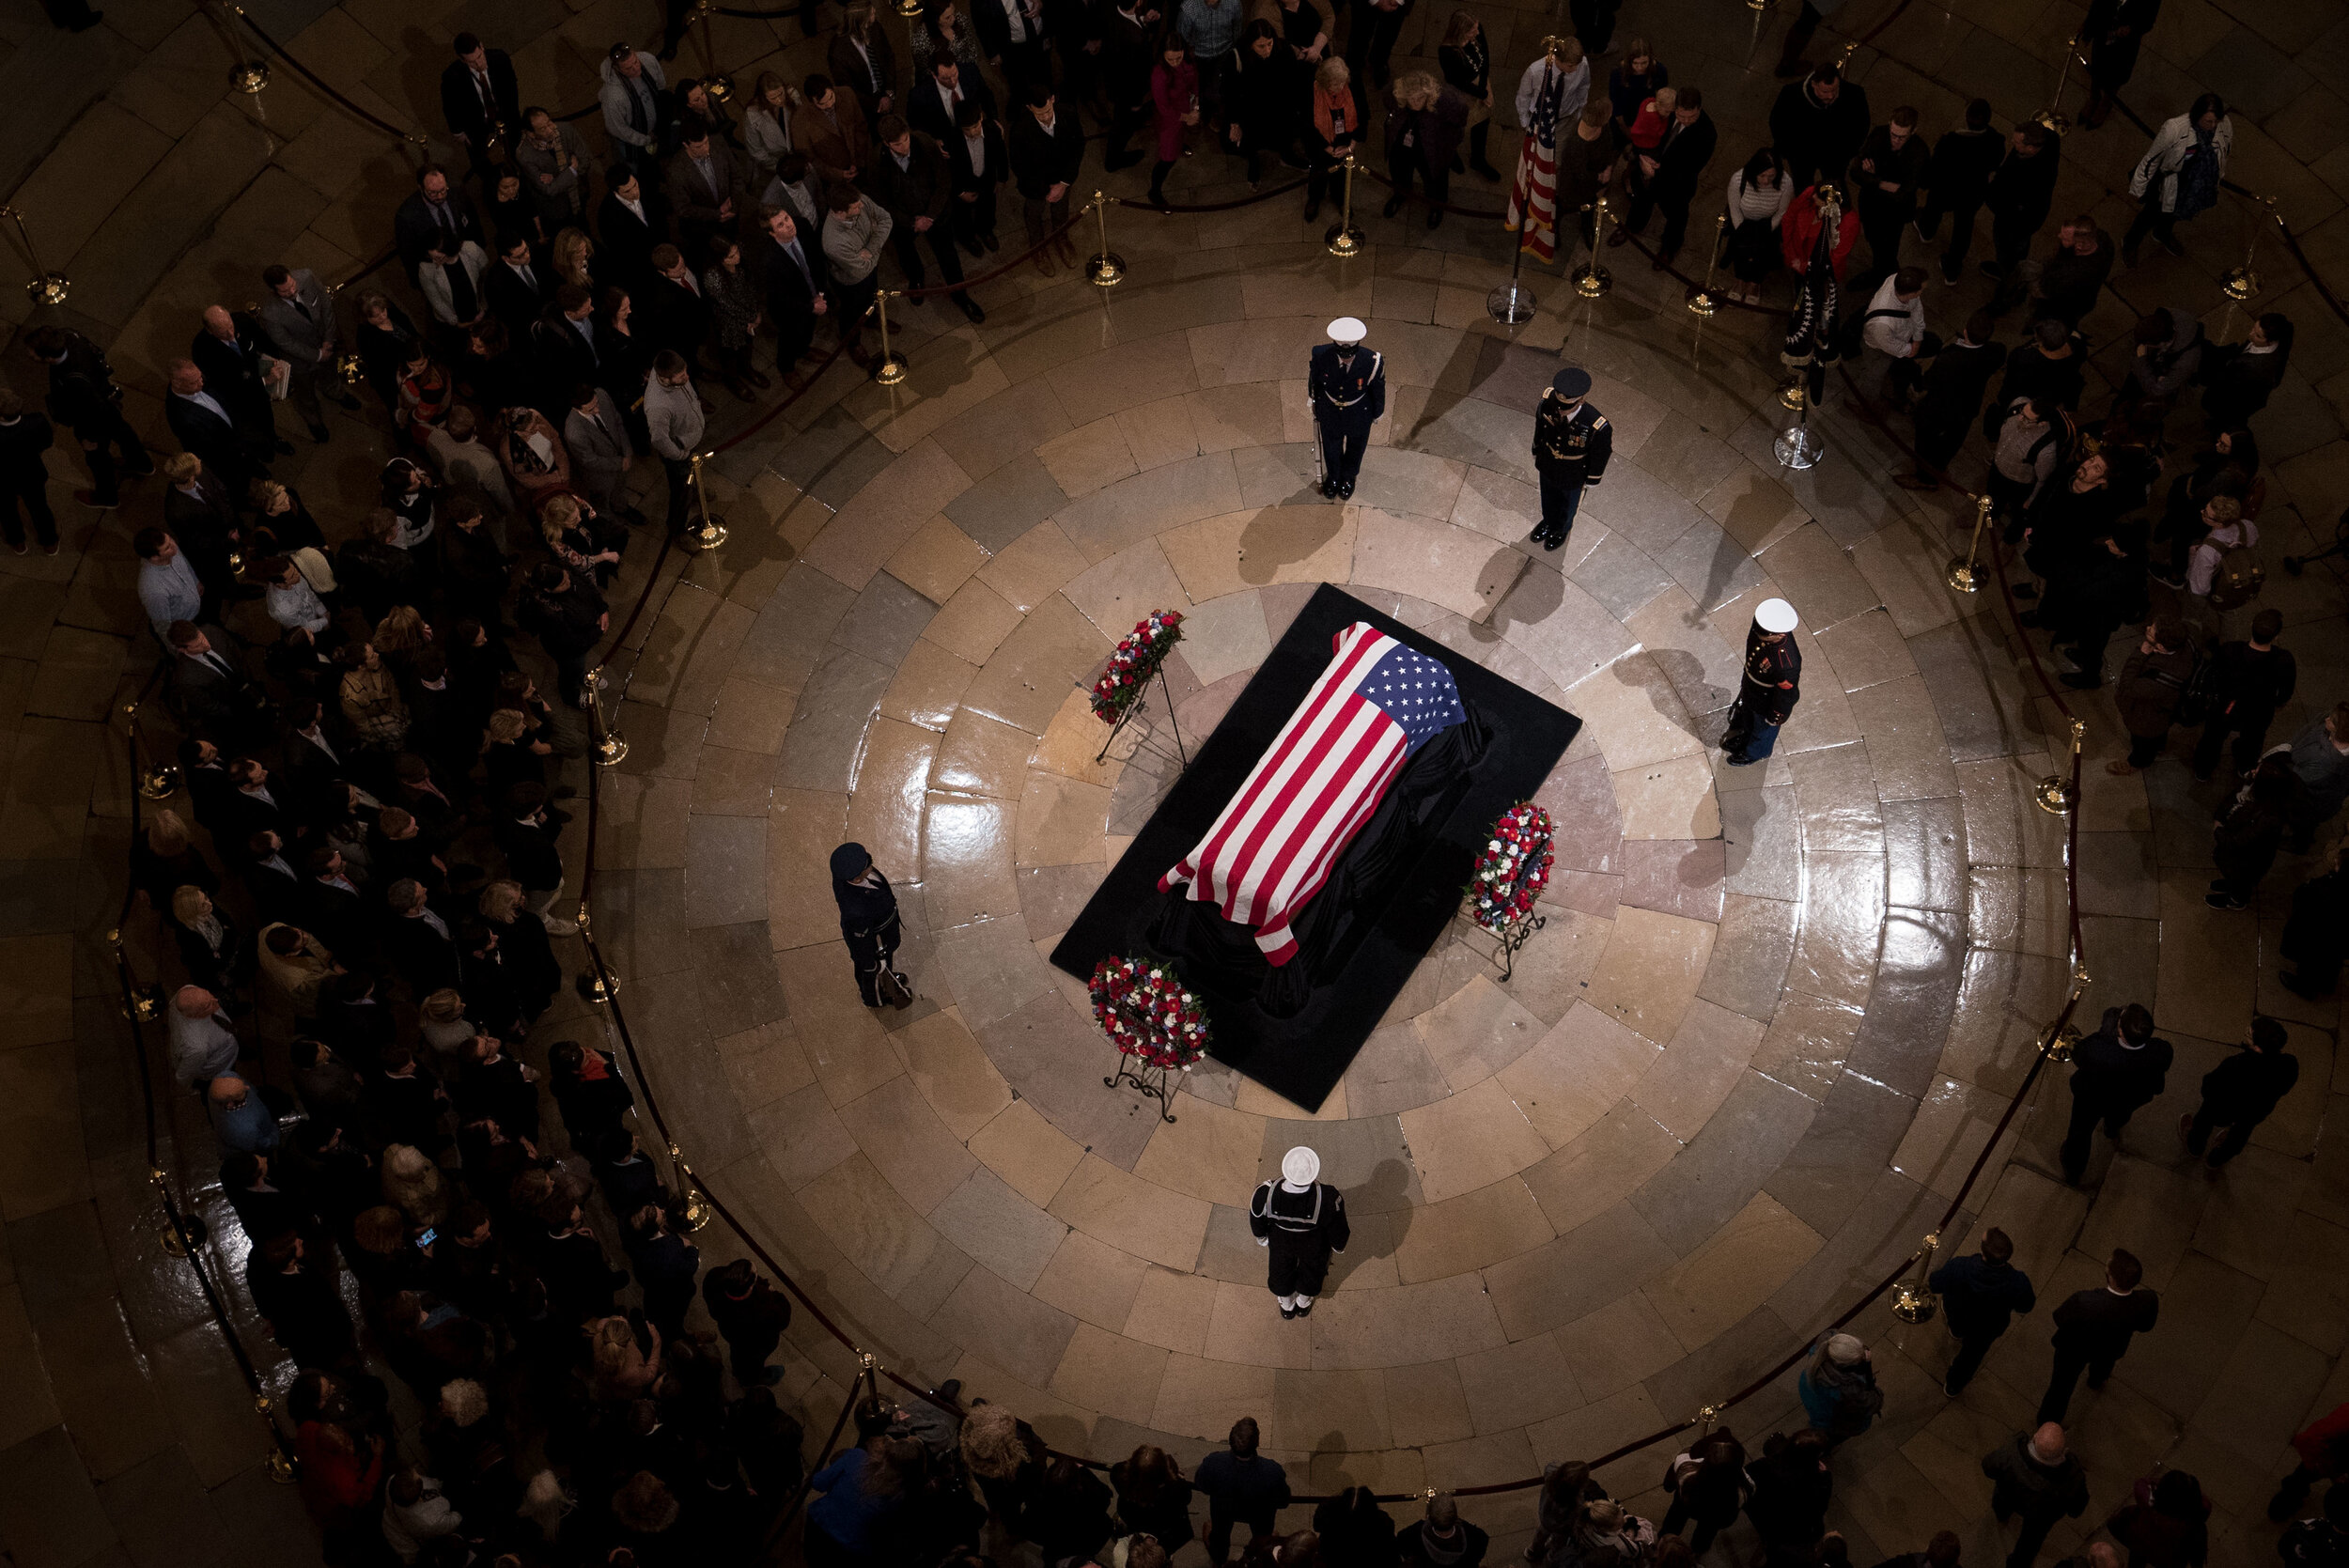 Members of the public view the casket containing former President George H.W. Bush's remains as he lies in state in the U.S. Capitol Rotunda on Monday night. Cameron Pollack/NPR